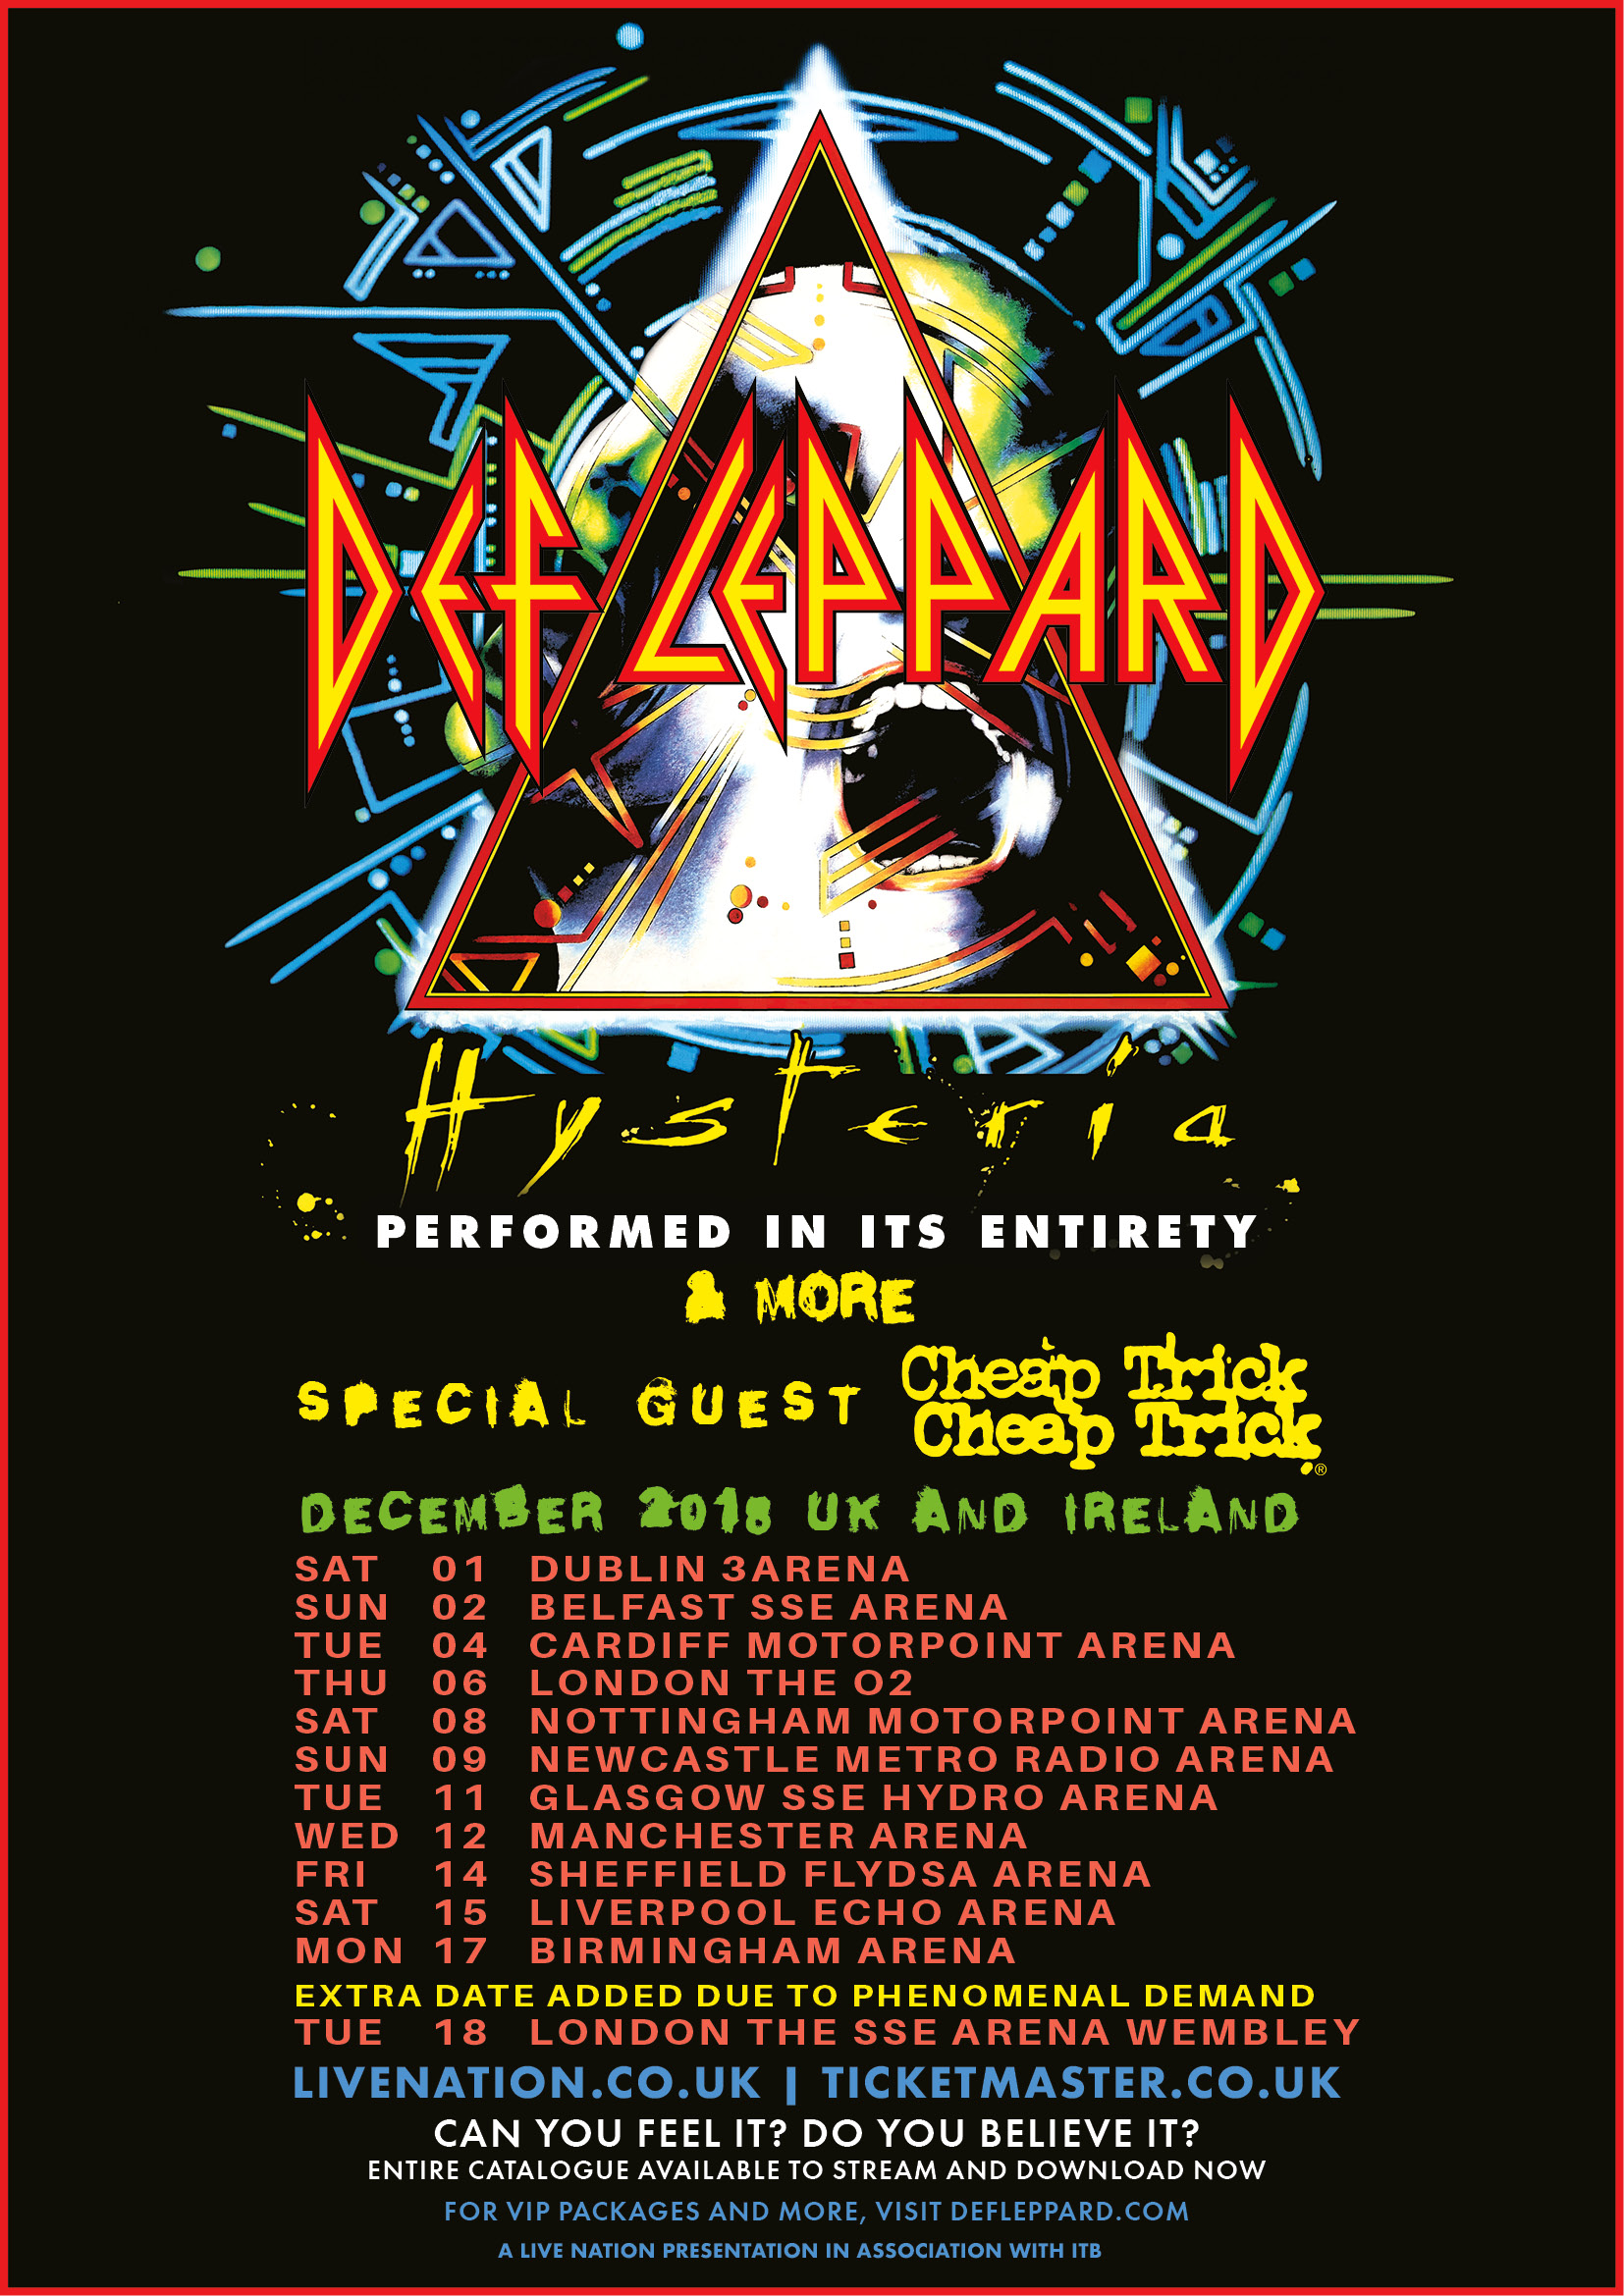 Nd London Show Added To The Hysteria Tour